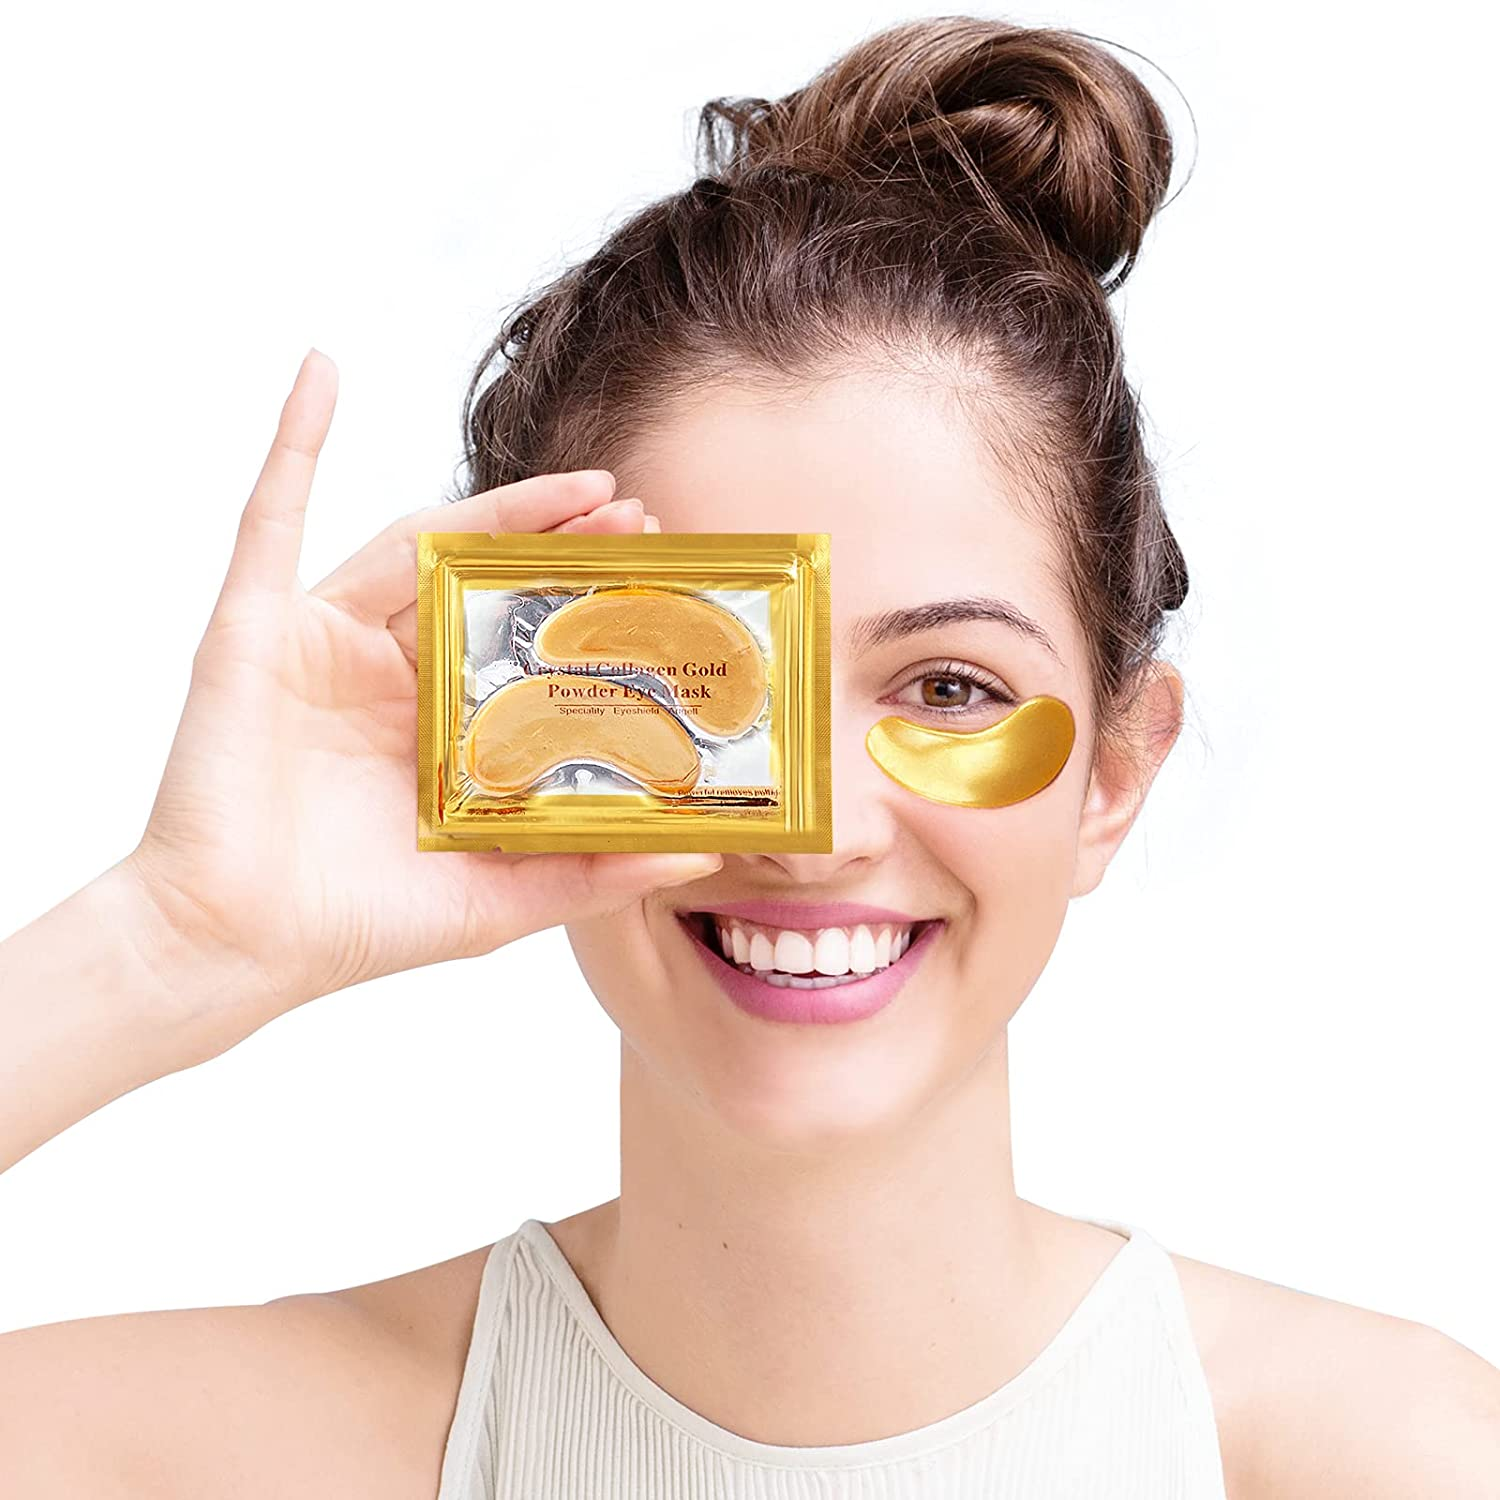 Under Eye Patches Max 79% OFF 24K Pads Bags Mask Gold Omaha Mall